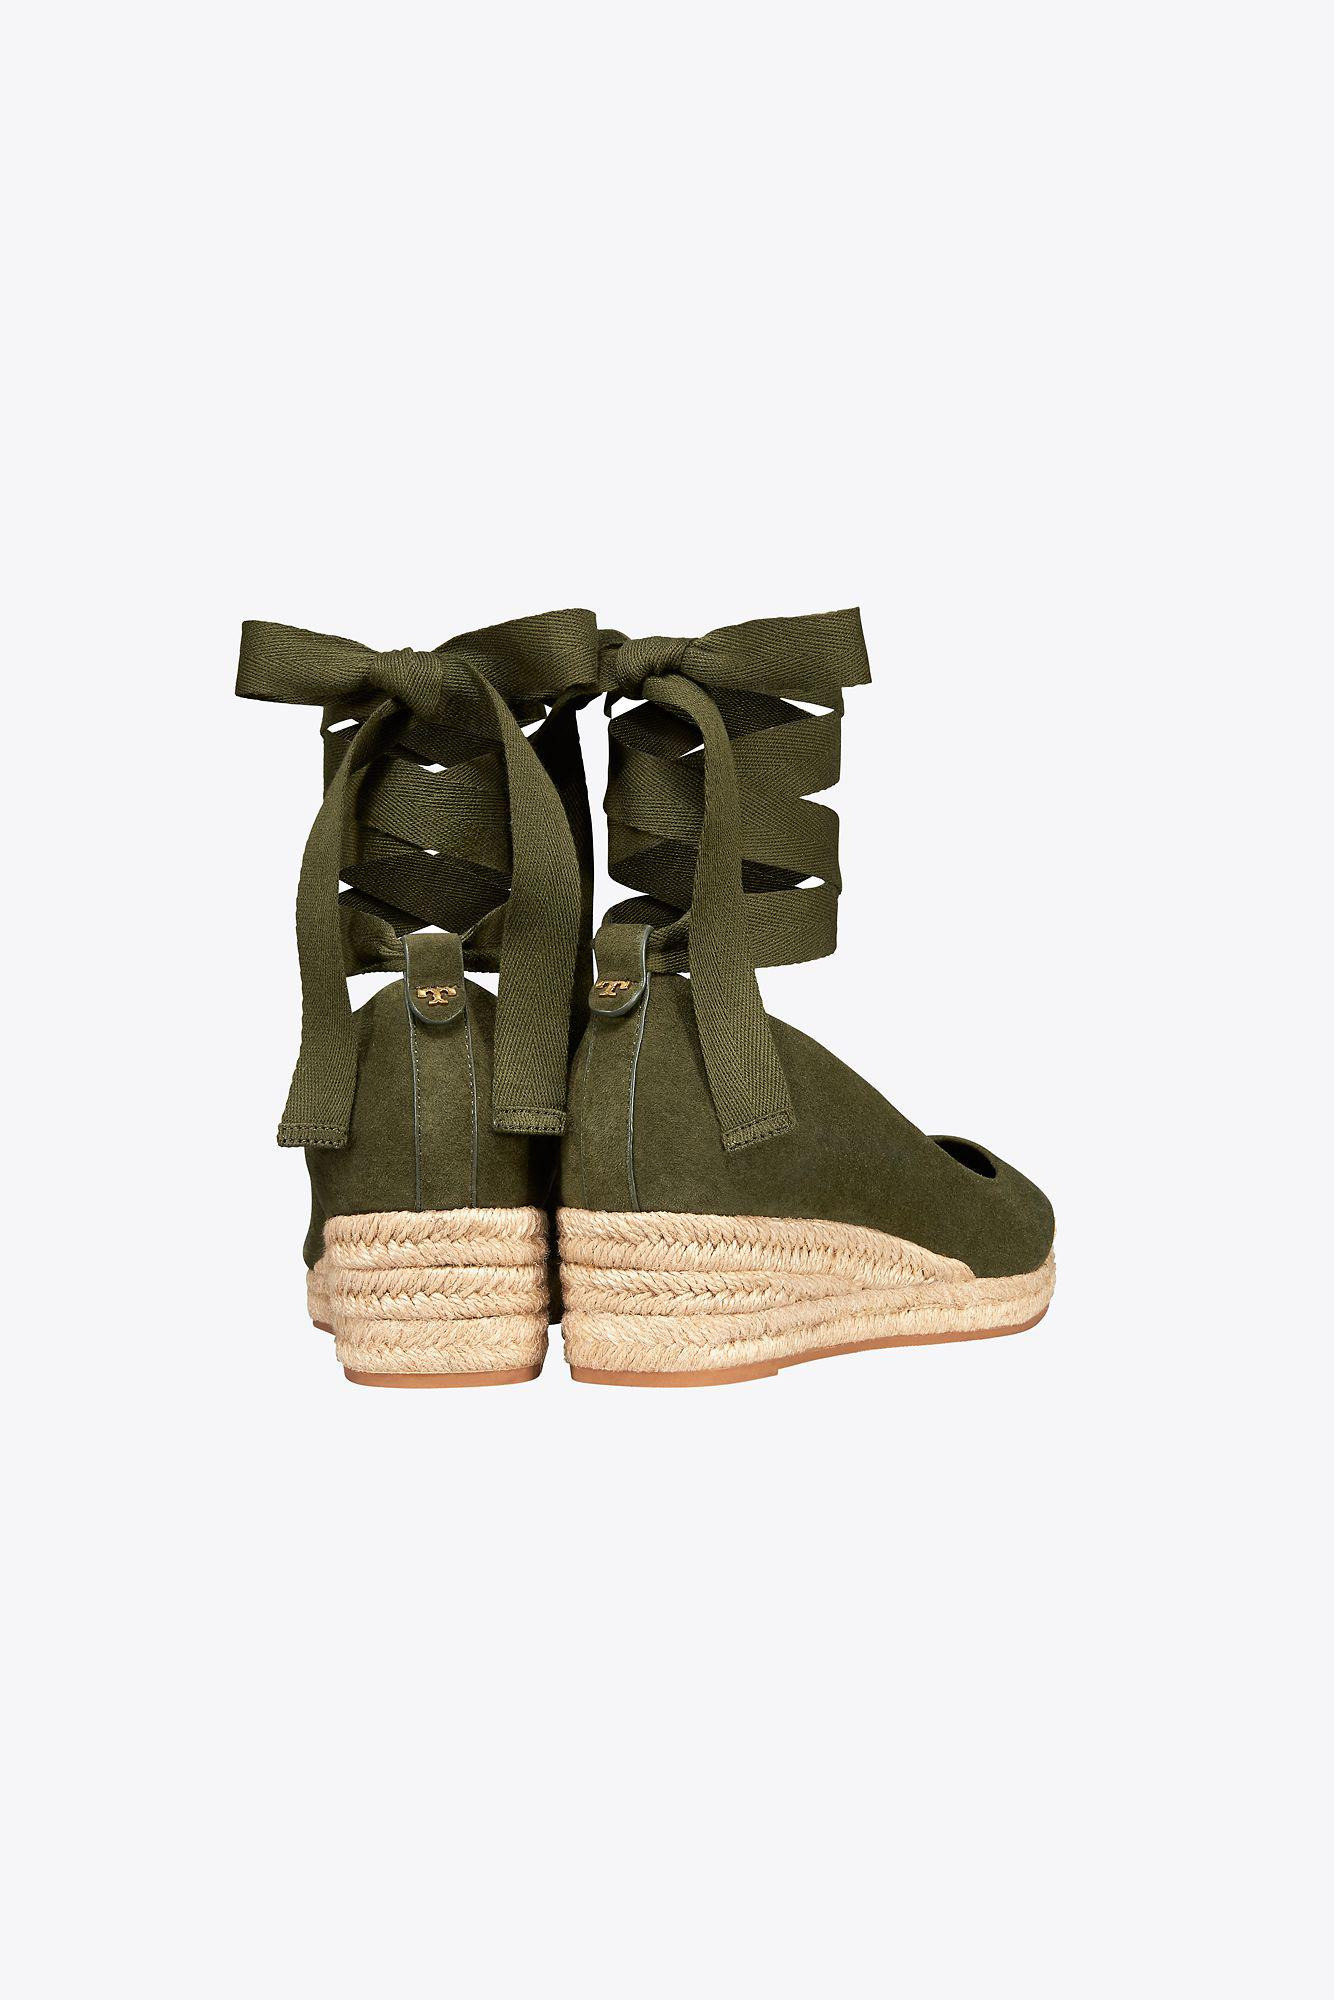 a0358faa1 Tory Burch - Green Heather Suede Wedge Espadrille - Lyst. View fullscreen